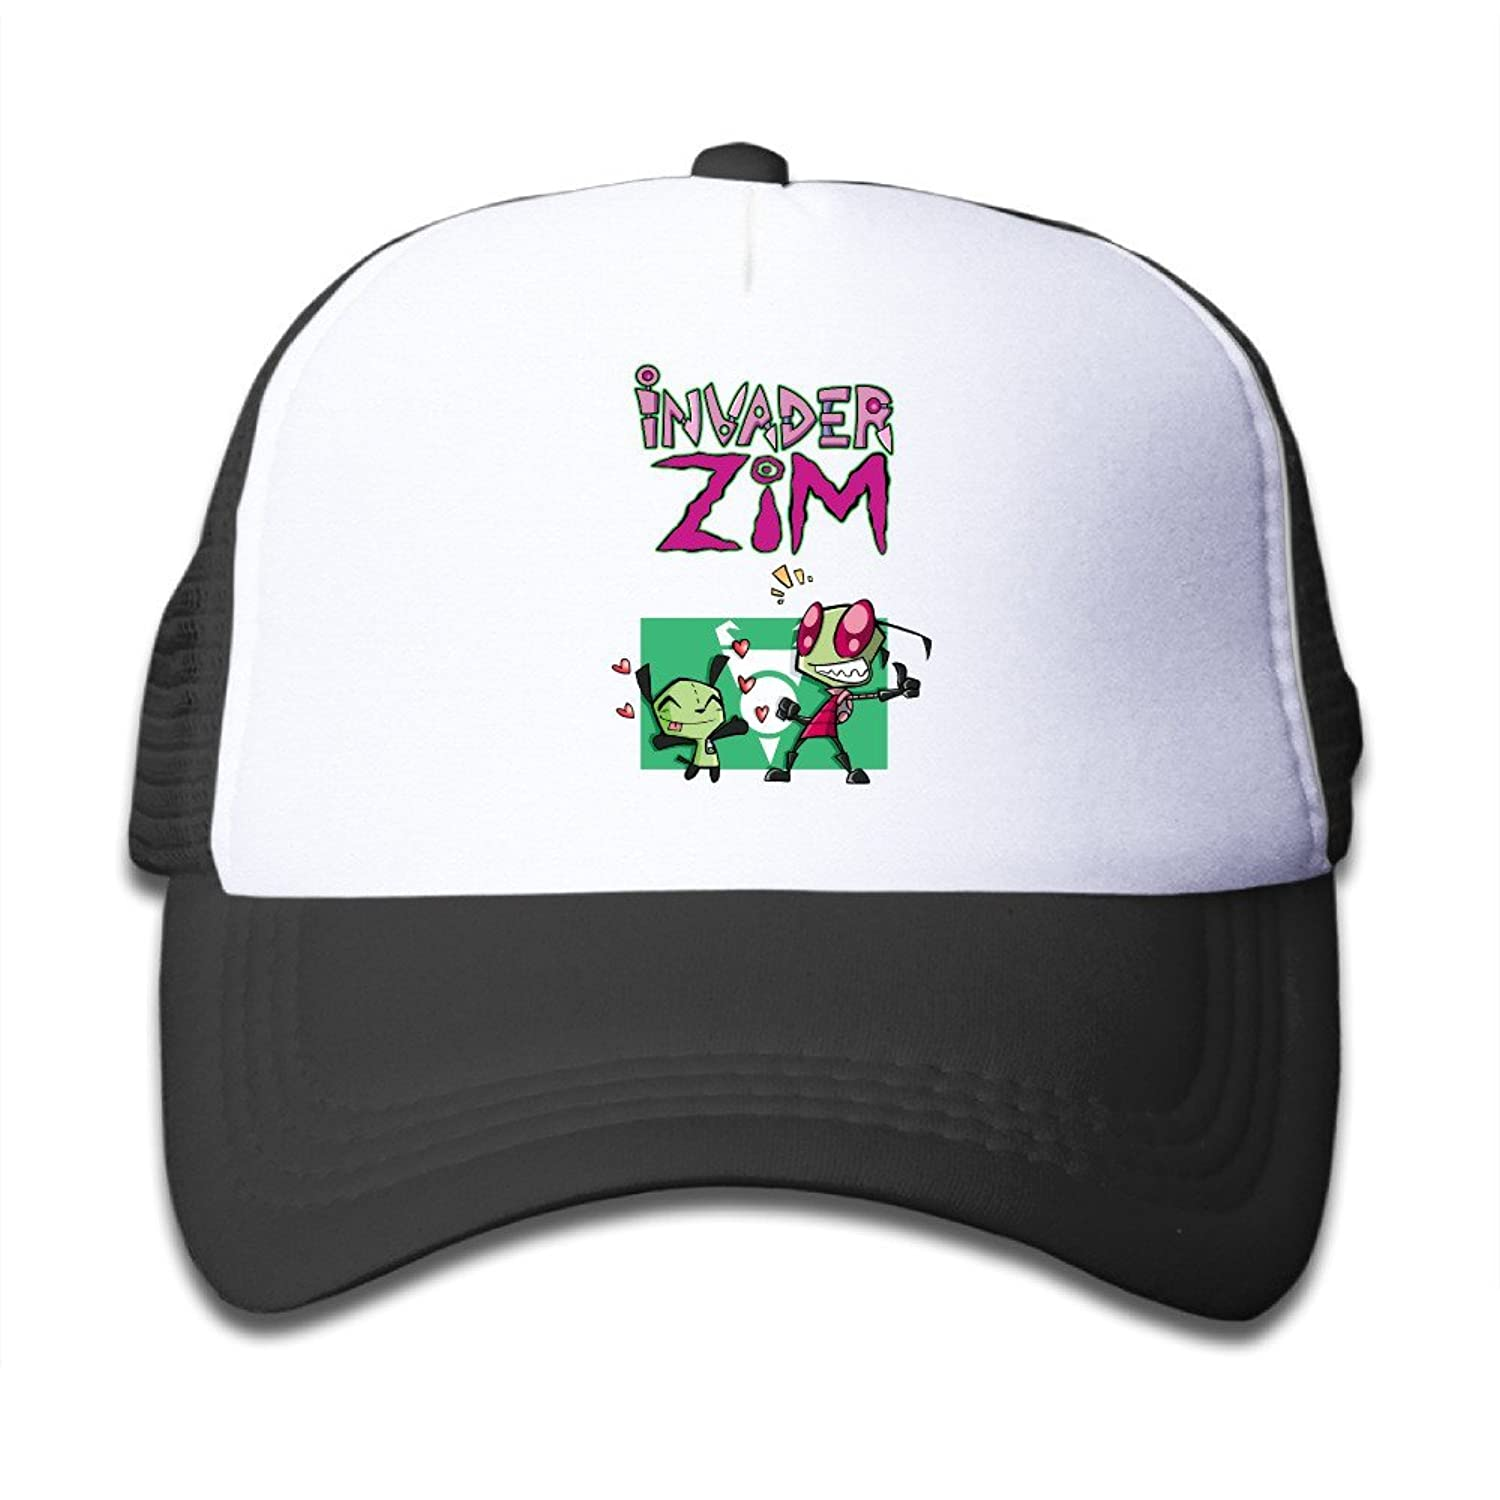 Matthe Youth Children Girl Boy Kids Element Printed Pattern Invader Zim Unisex Half Mesh Adjustable Baseball Cap Hat Snapback SkyBlue